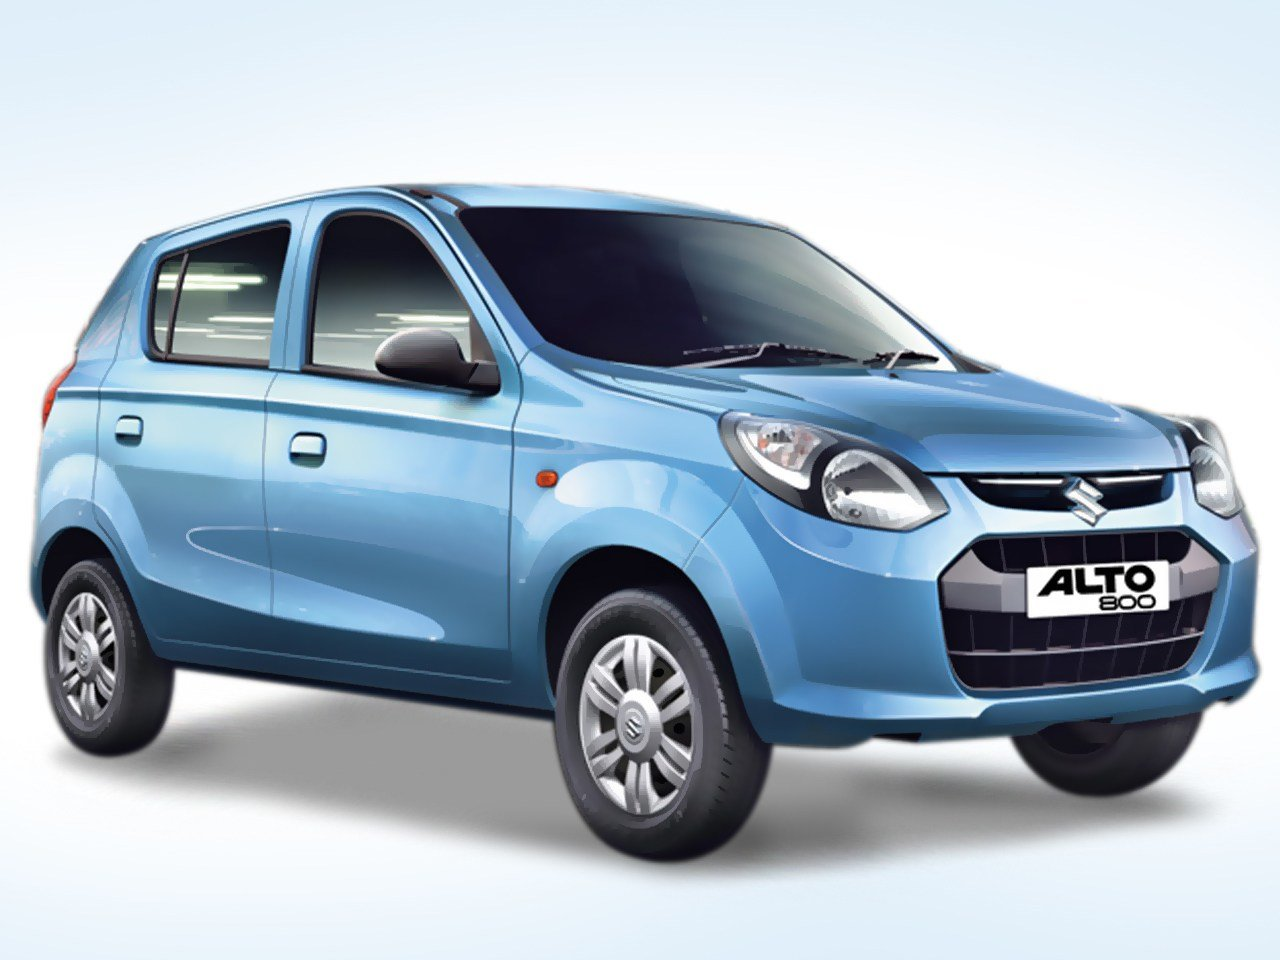 Latest New Maruti Suzuki Alto K10 Car Wallpapers New Maruti Free Download